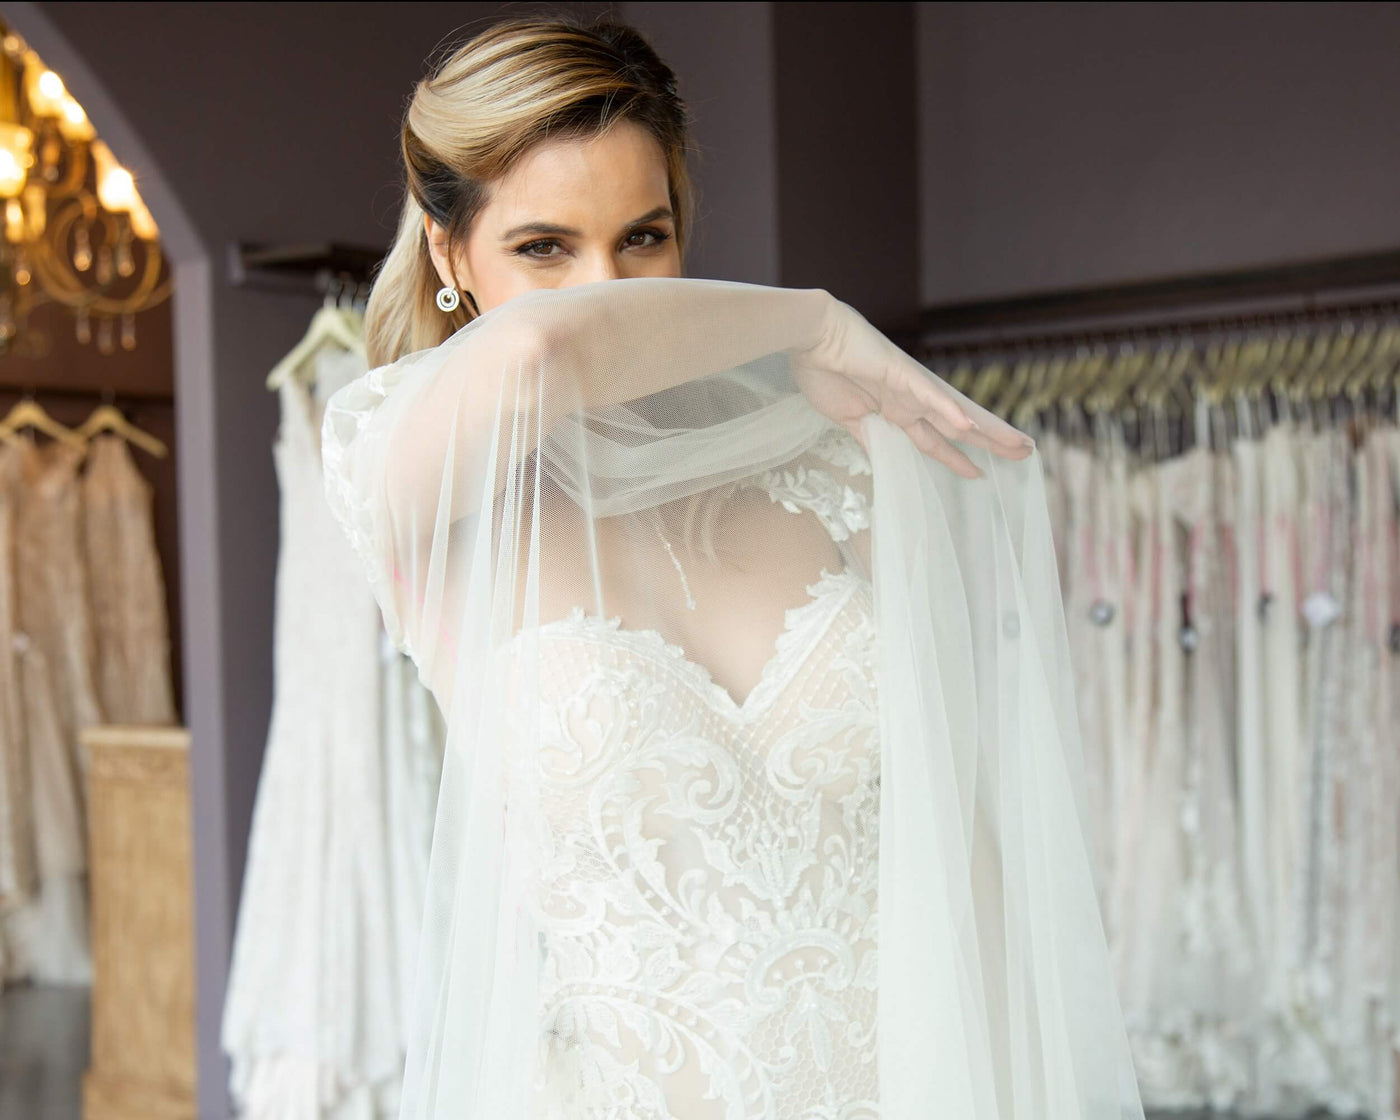 5 Tips for Finding the Right Veil to Match Your Dress